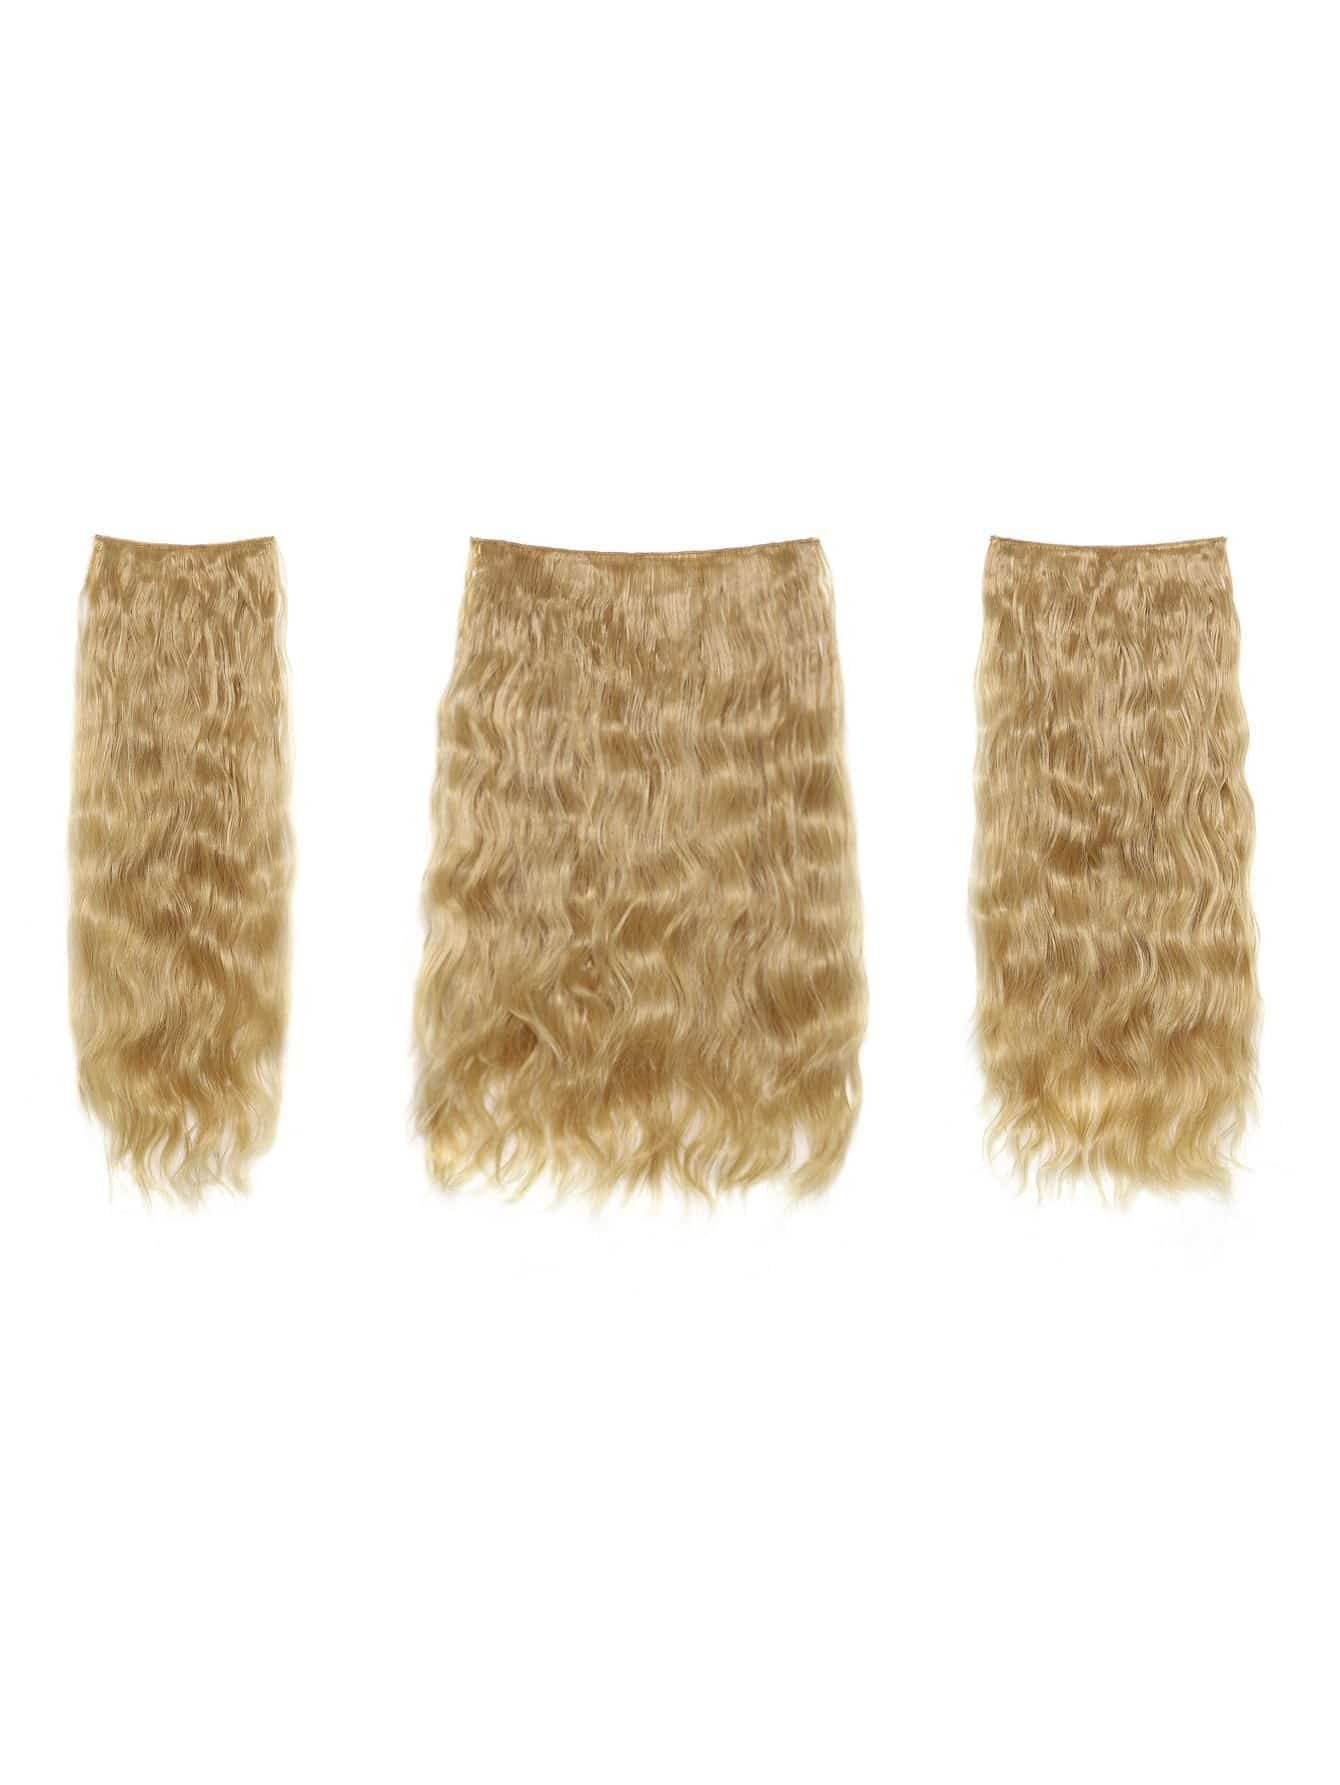 цена на Golden Blonde Clip In Curly Hair Extension 3pcs